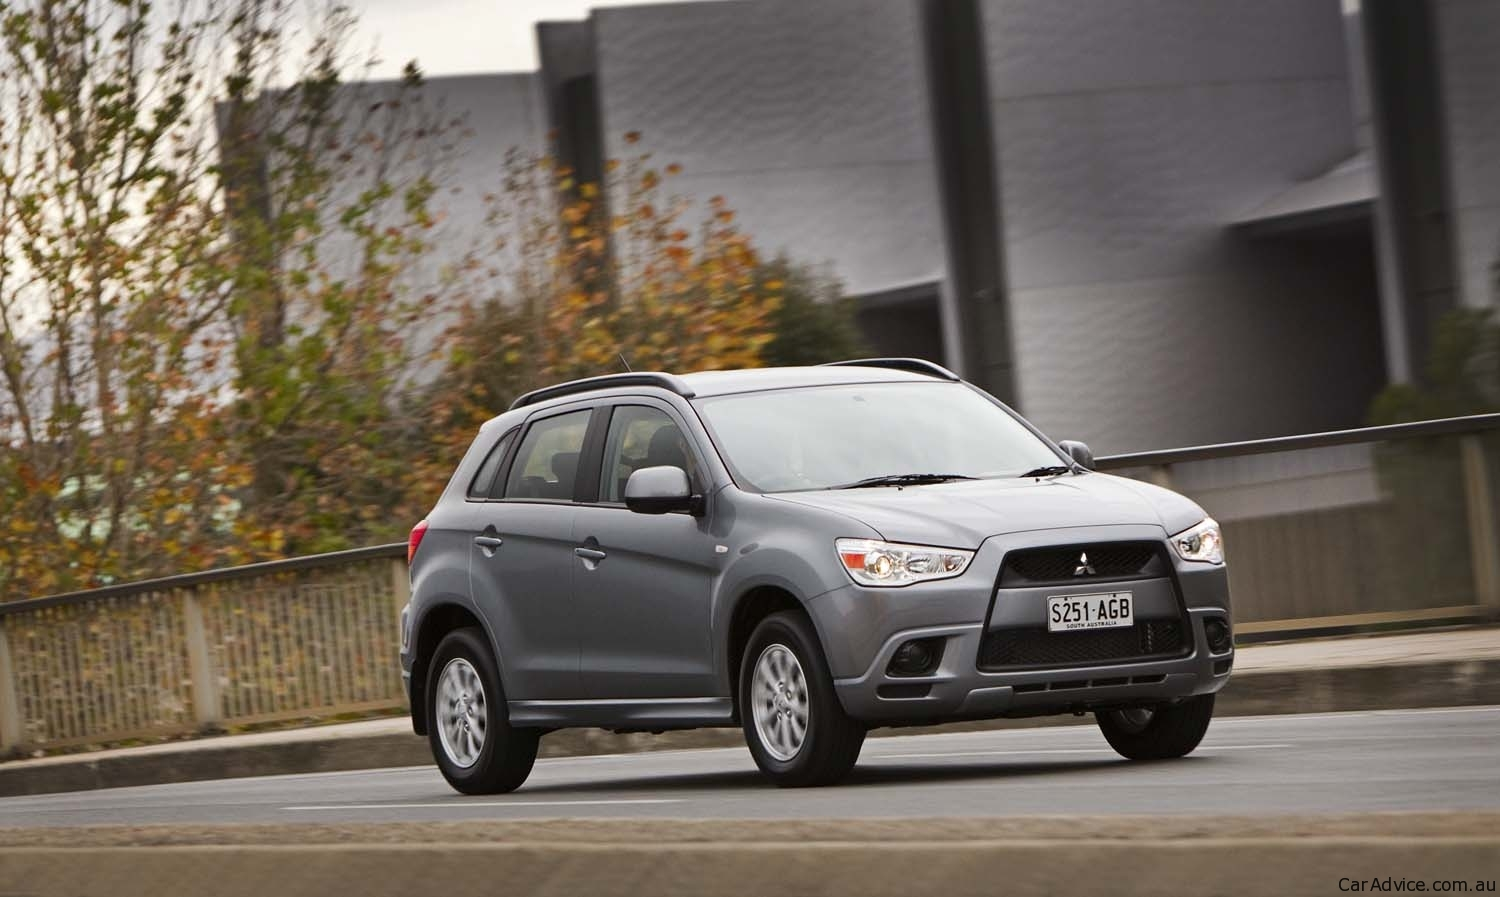 2015 Mitsubishi Eclipse >> 2010 Mitsubishi ASX 2WD awarded 5-star ANCAP safety rating ...